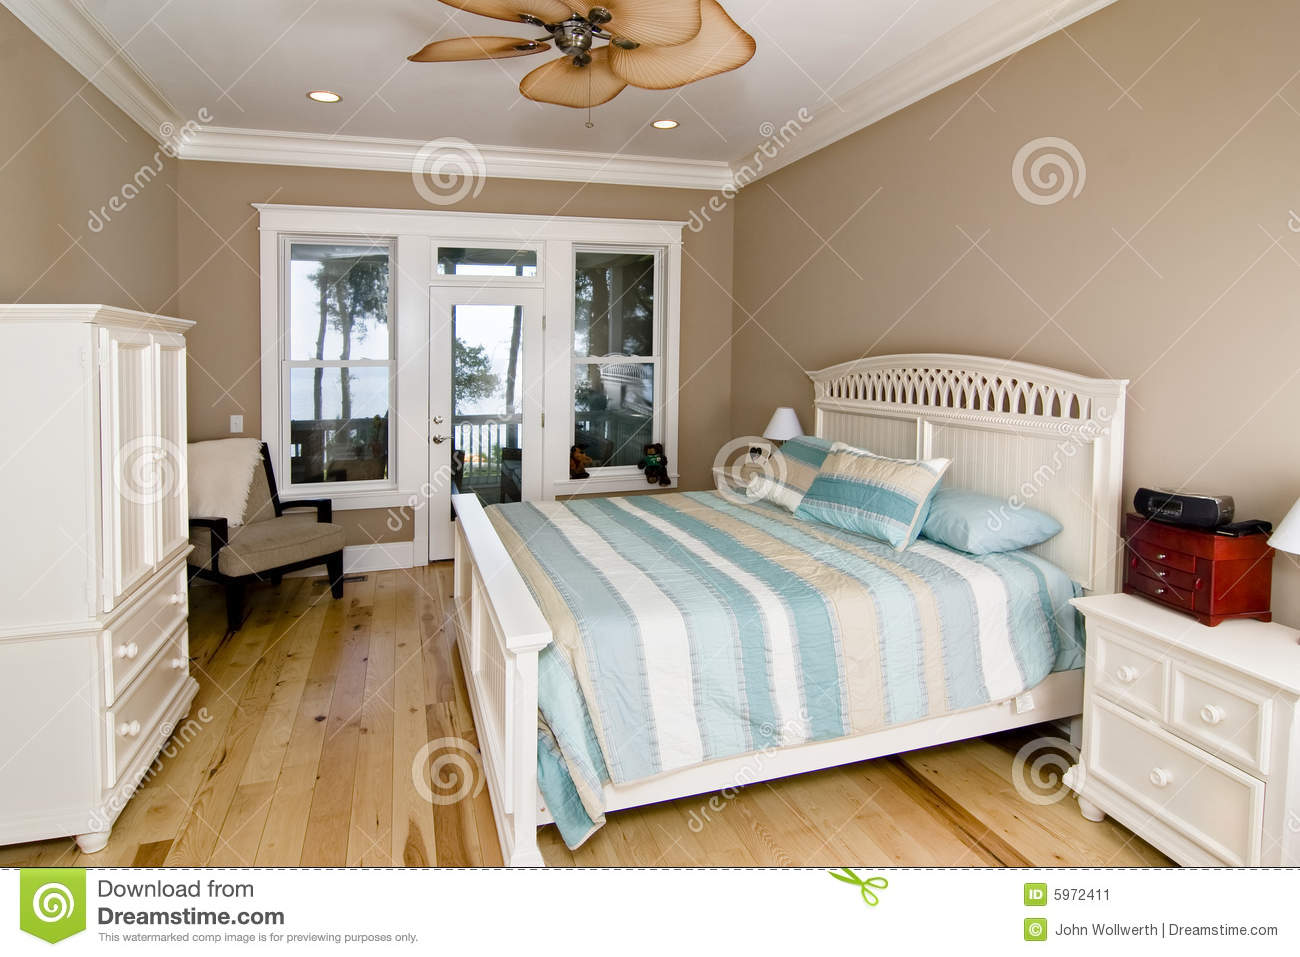 chambre coucher avec la vue de bord de mer image stock image 5972411. Black Bedroom Furniture Sets. Home Design Ideas